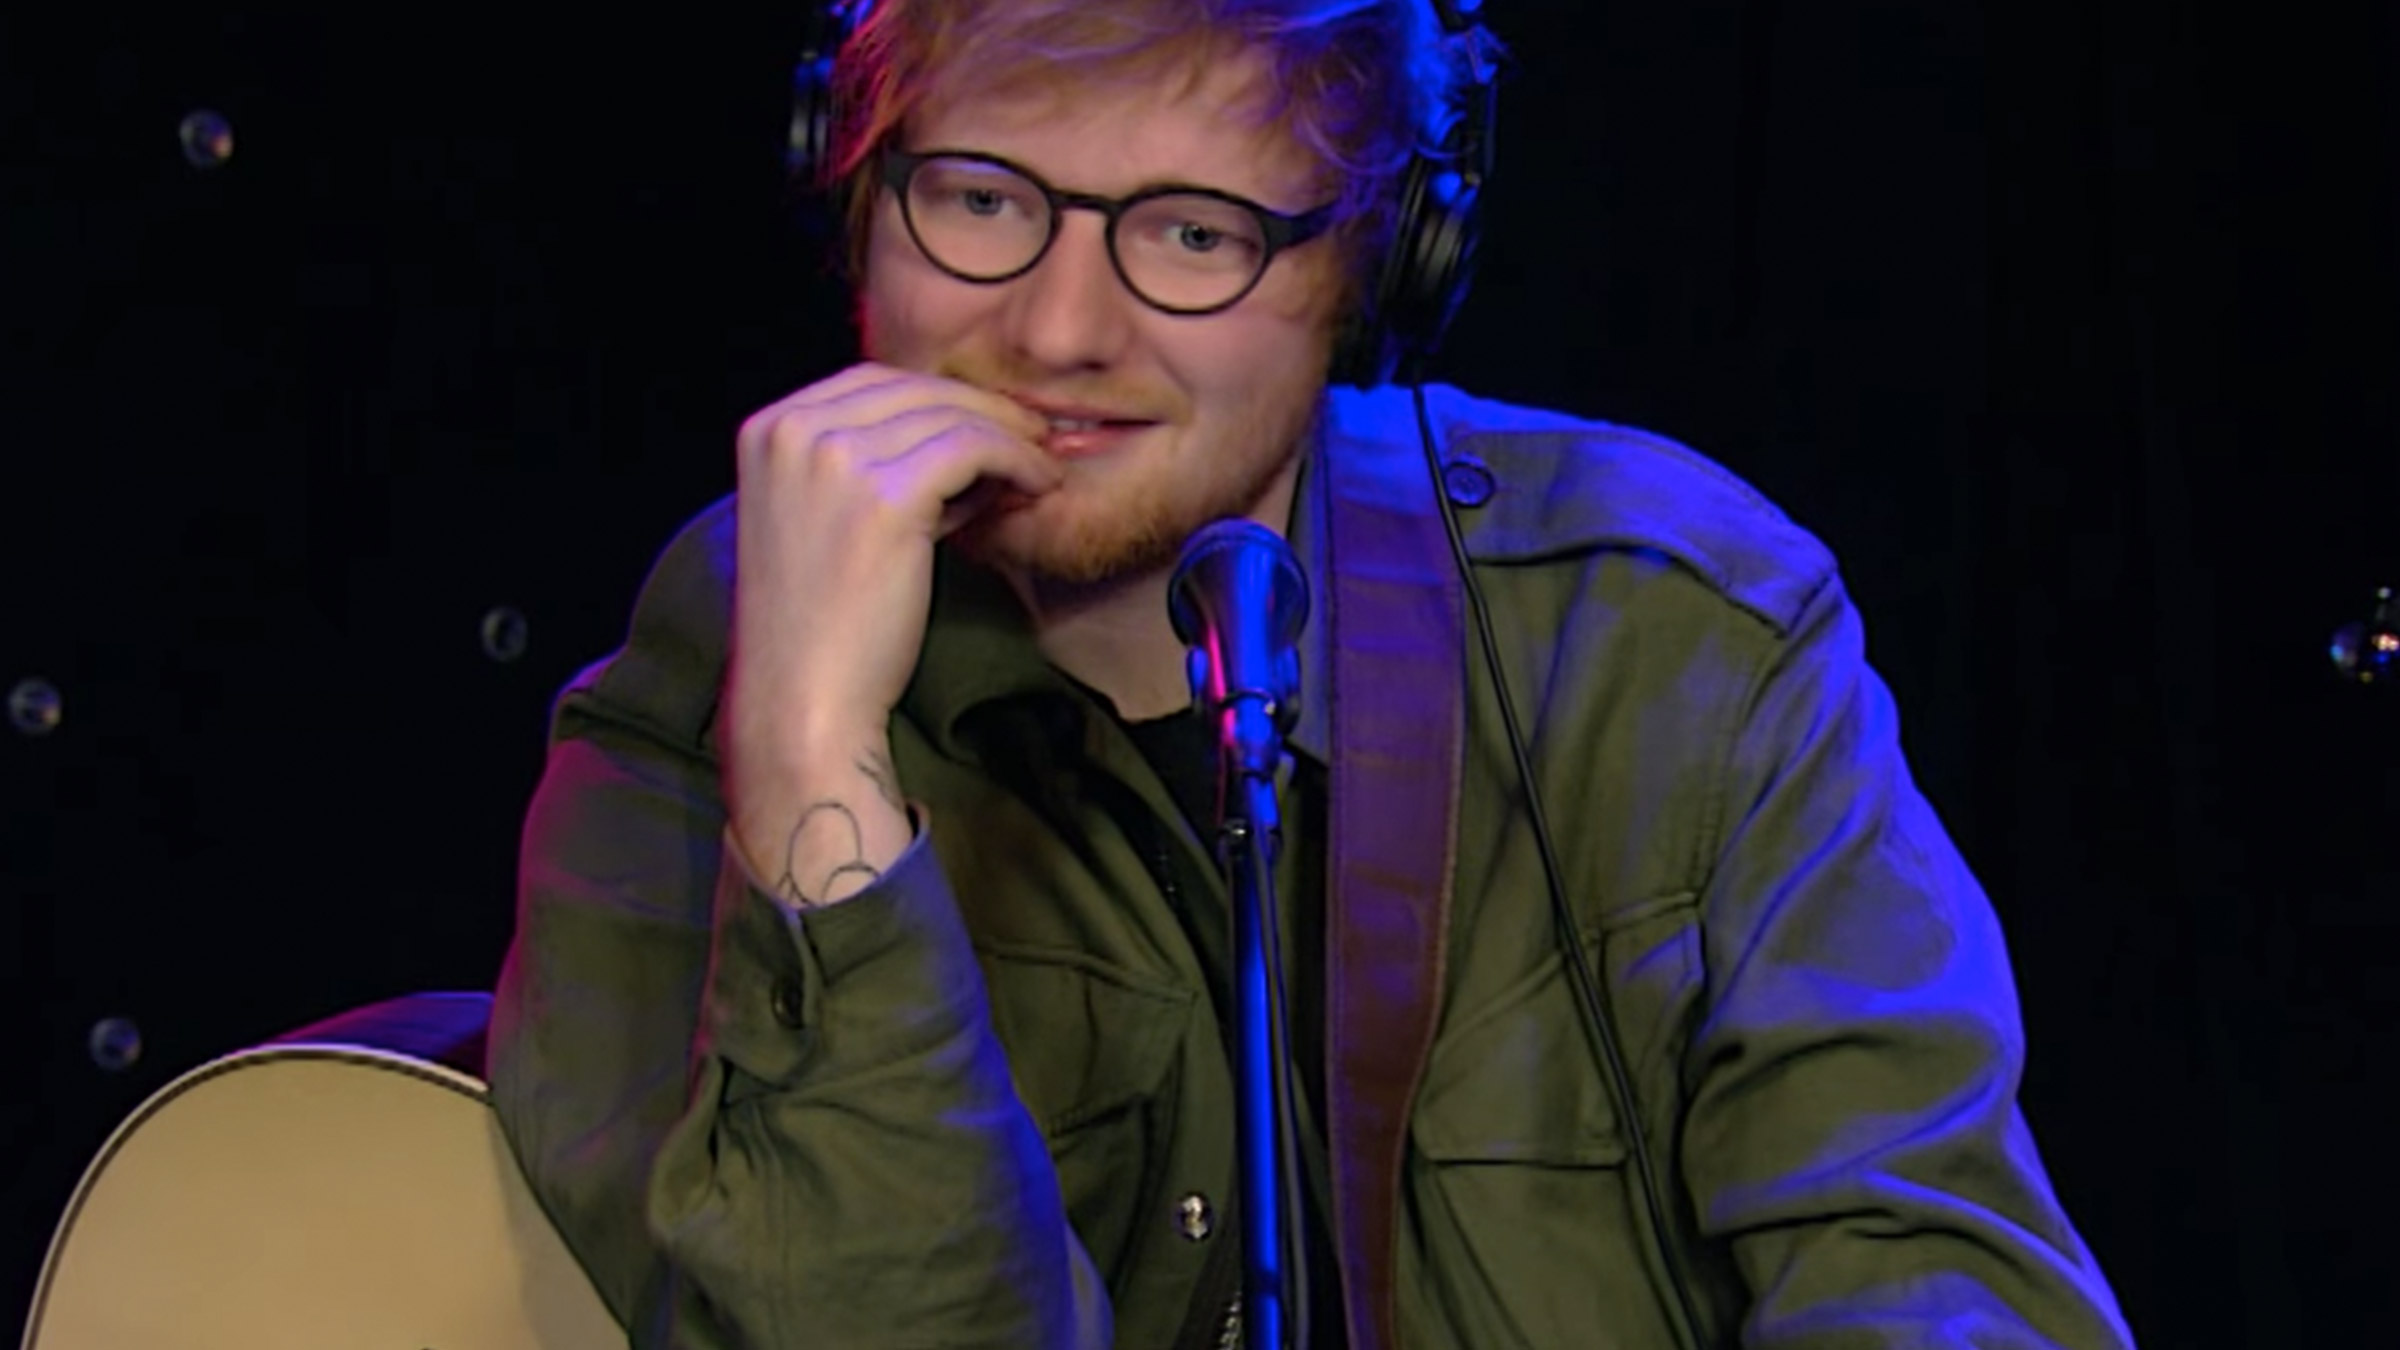 Ed singing teaser